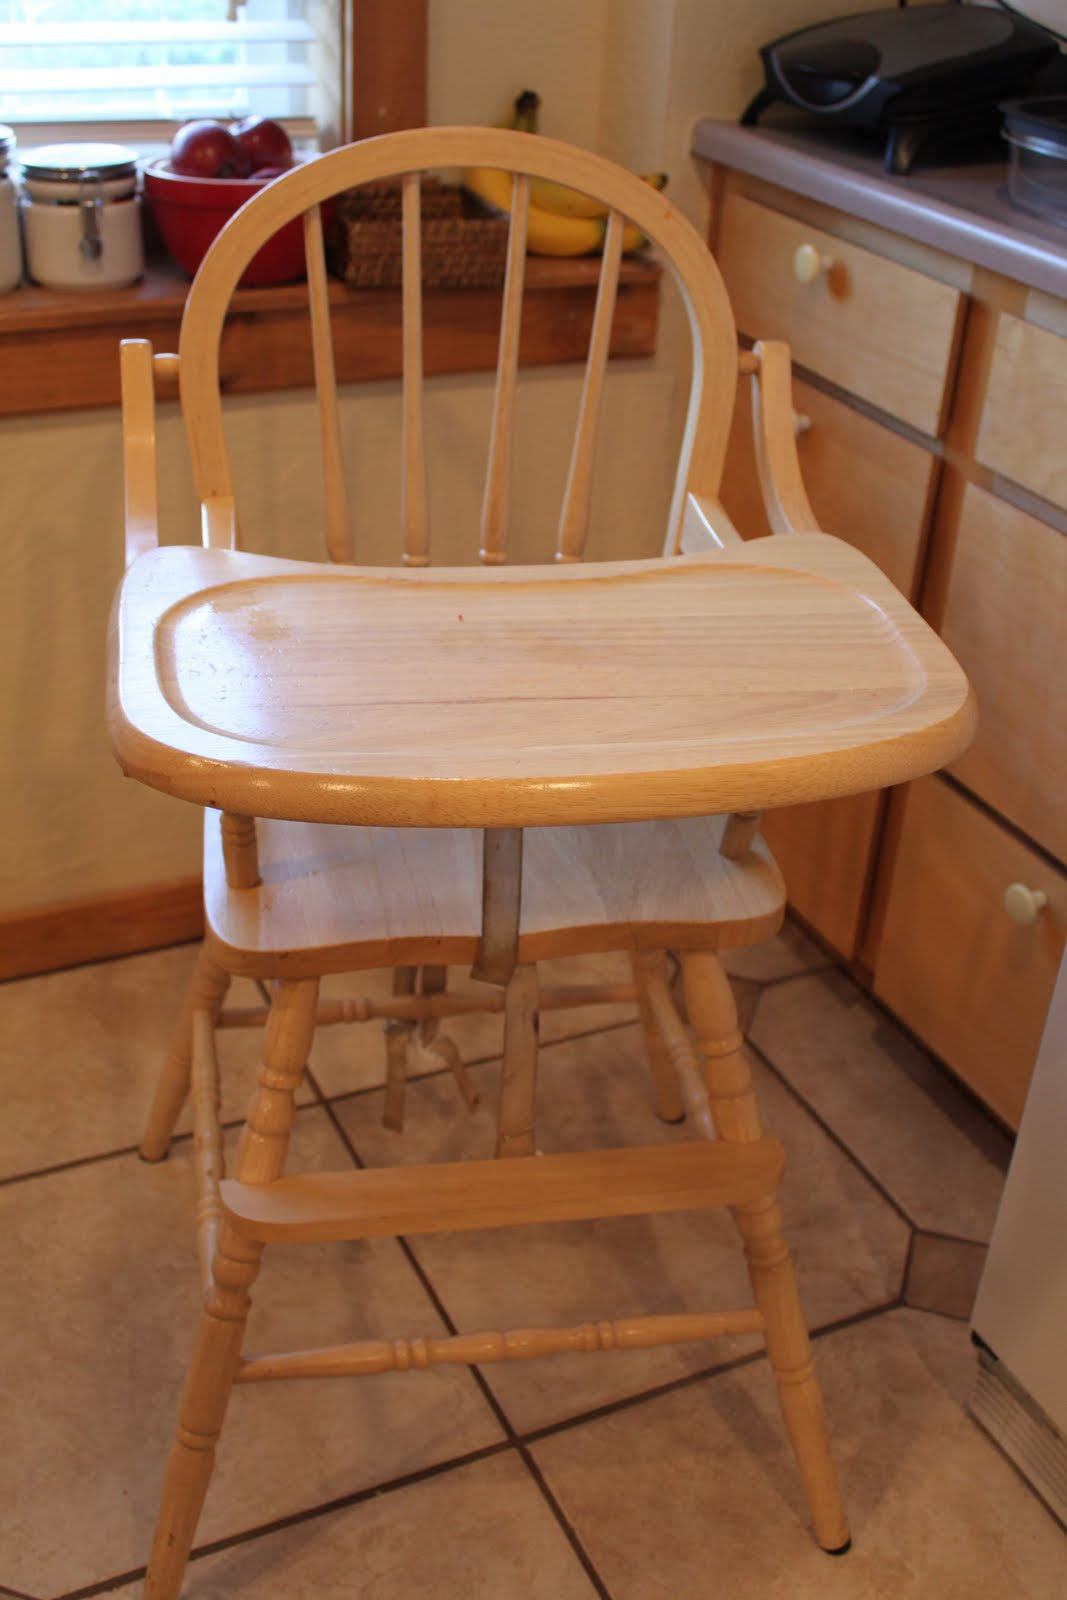 How To Make A Wooden Chair Comfy Computer Chairs Woodwork Build High Pdf Plans